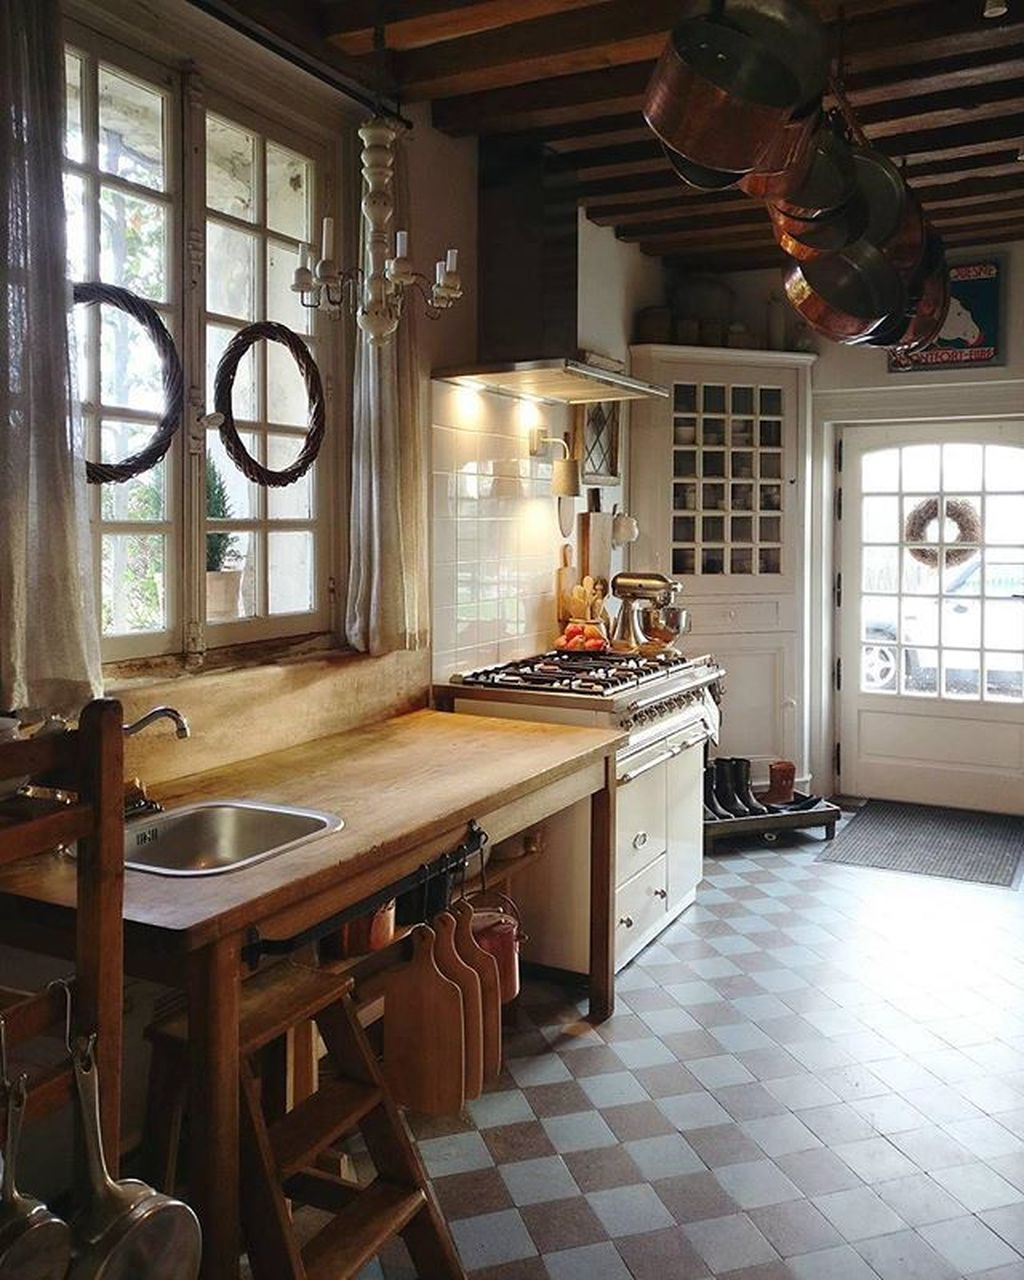 Country Kitchen Pictures 2019: Pin By Trend4homy On Kitchen Design Ideas In 2019